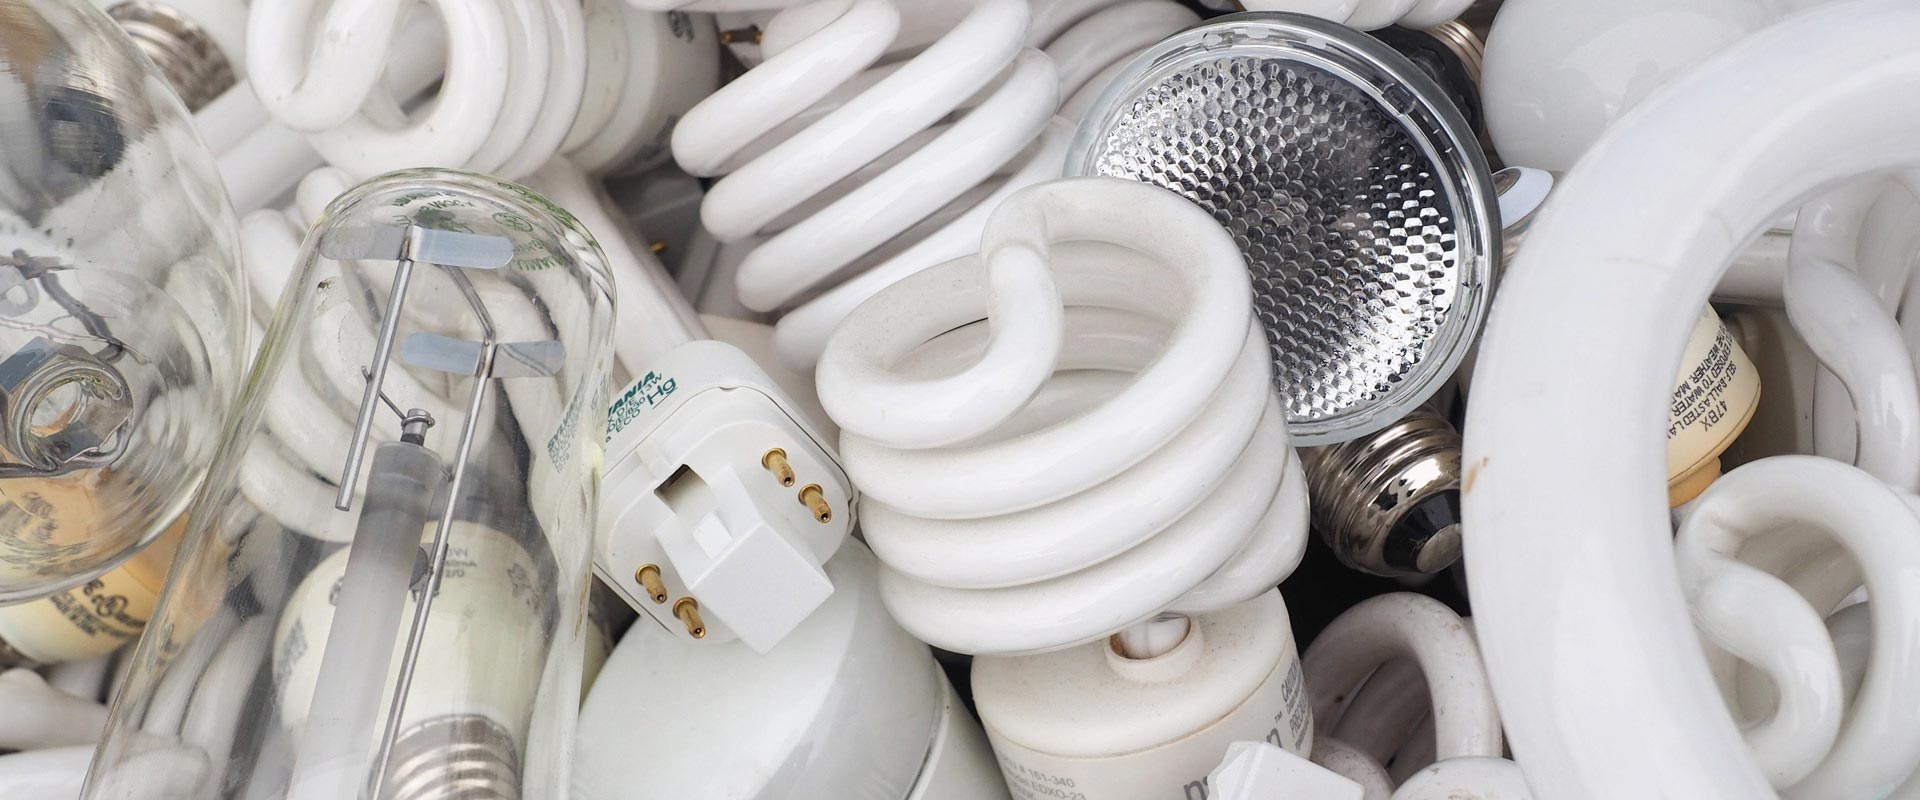 A picture of compact fluorescent blubs, pin lamps, hid bulbs, and halgoen bulbs. NLR recycles lamps and fluorescent bulbs.